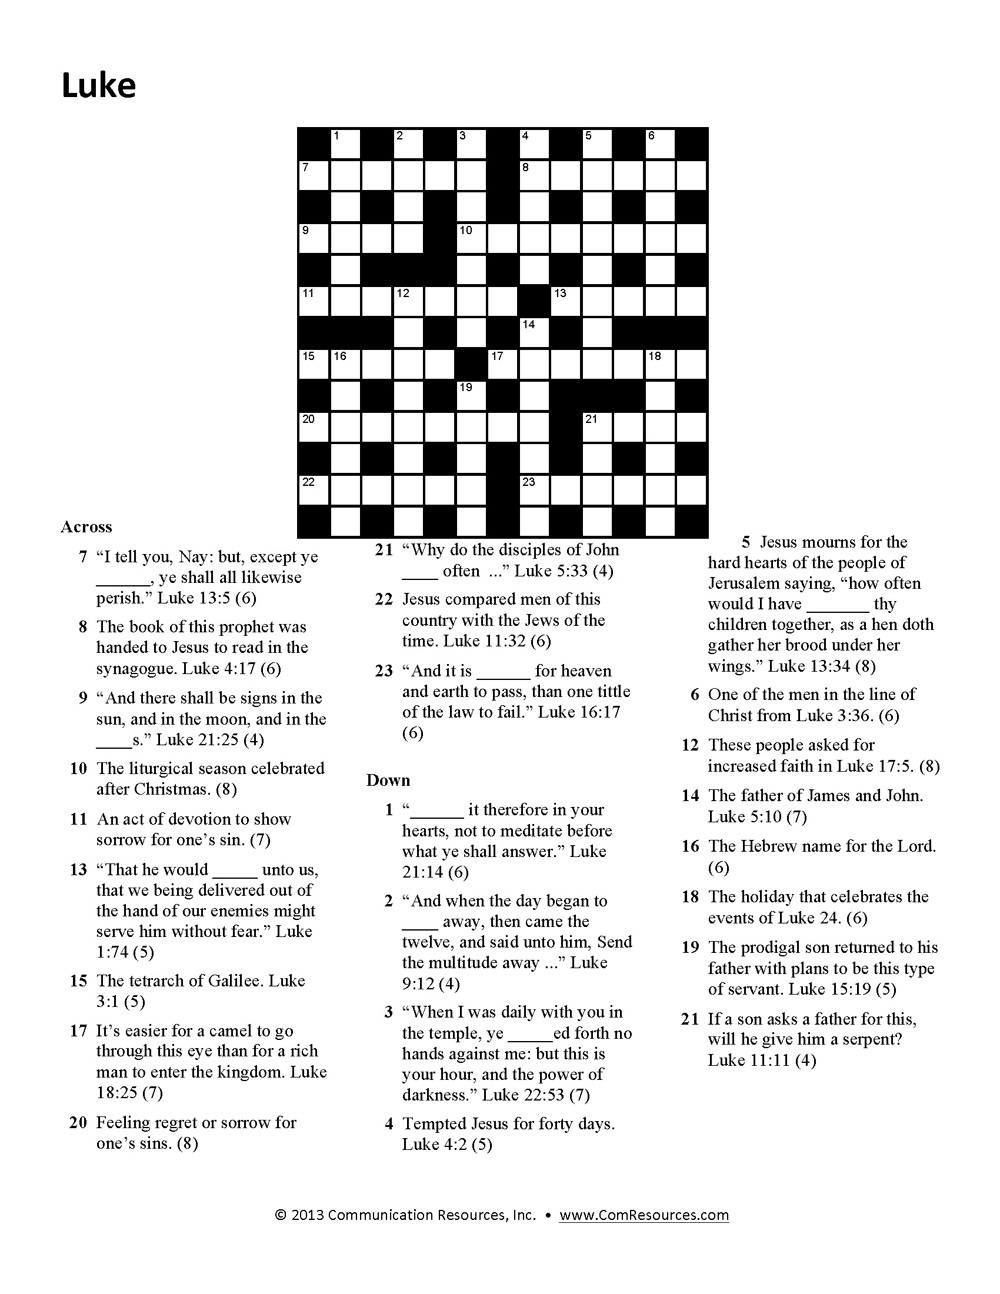 15 Fun Bible Crossword Puzzles | Kittybabylove - Trivia Crossword Puzzles Printable